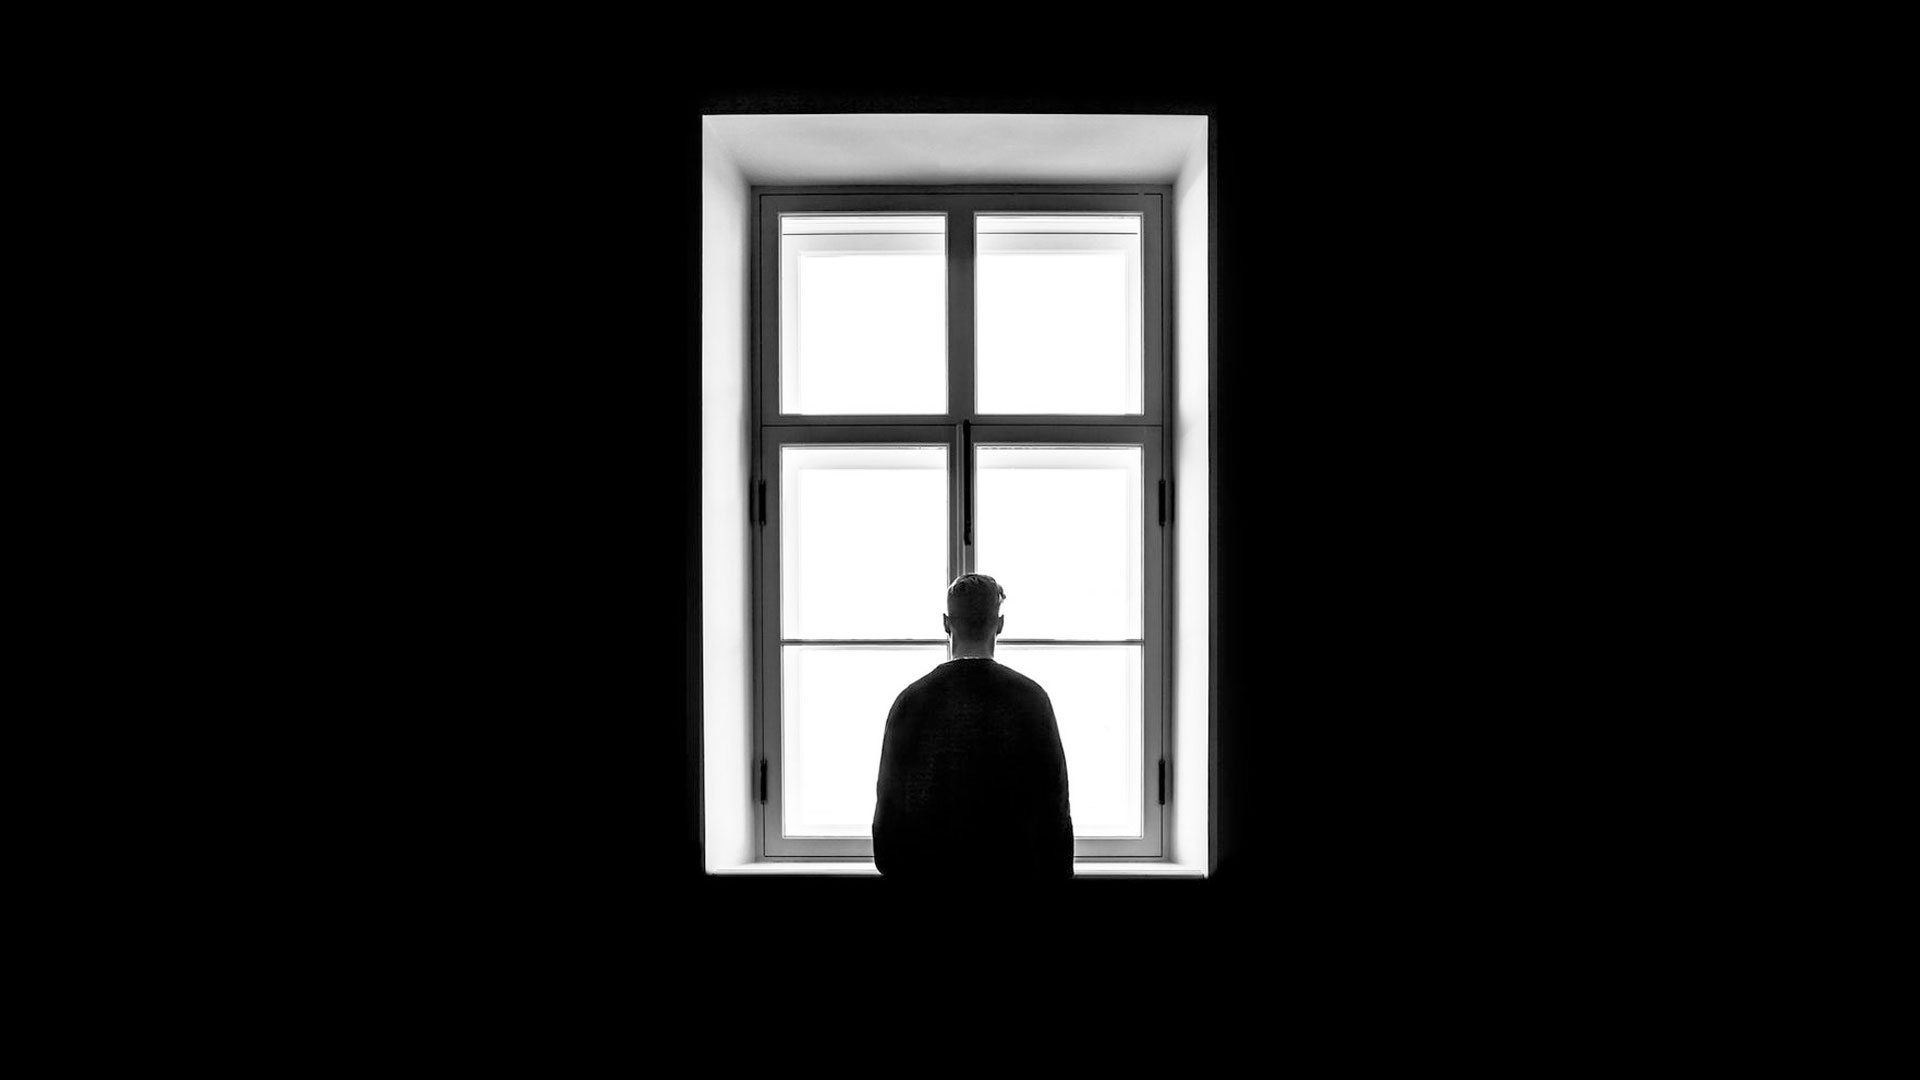 lonely man in black room with window